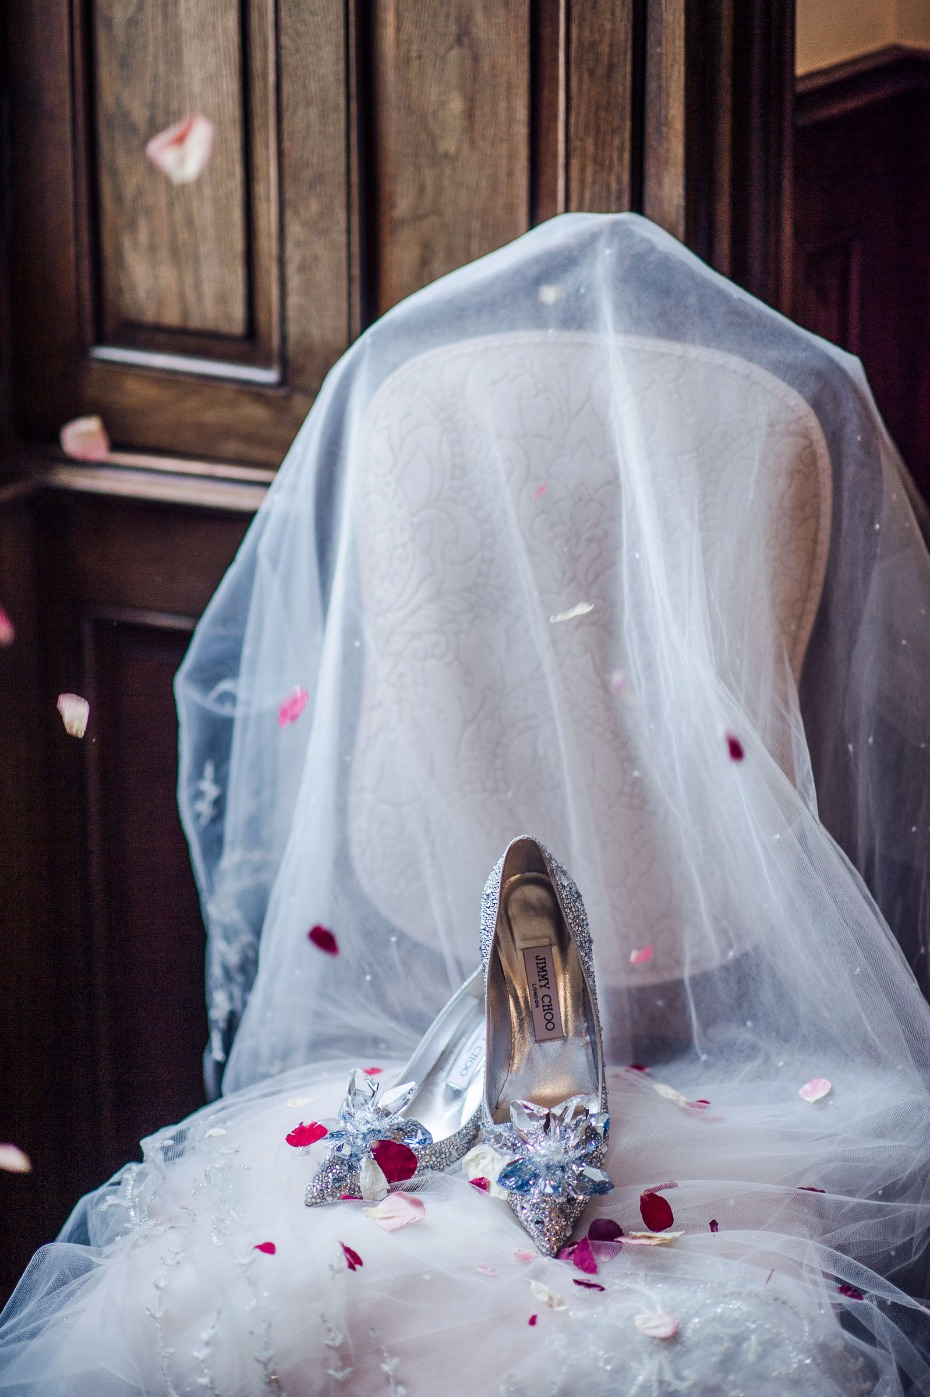 those are some bedazzled wedding shoes